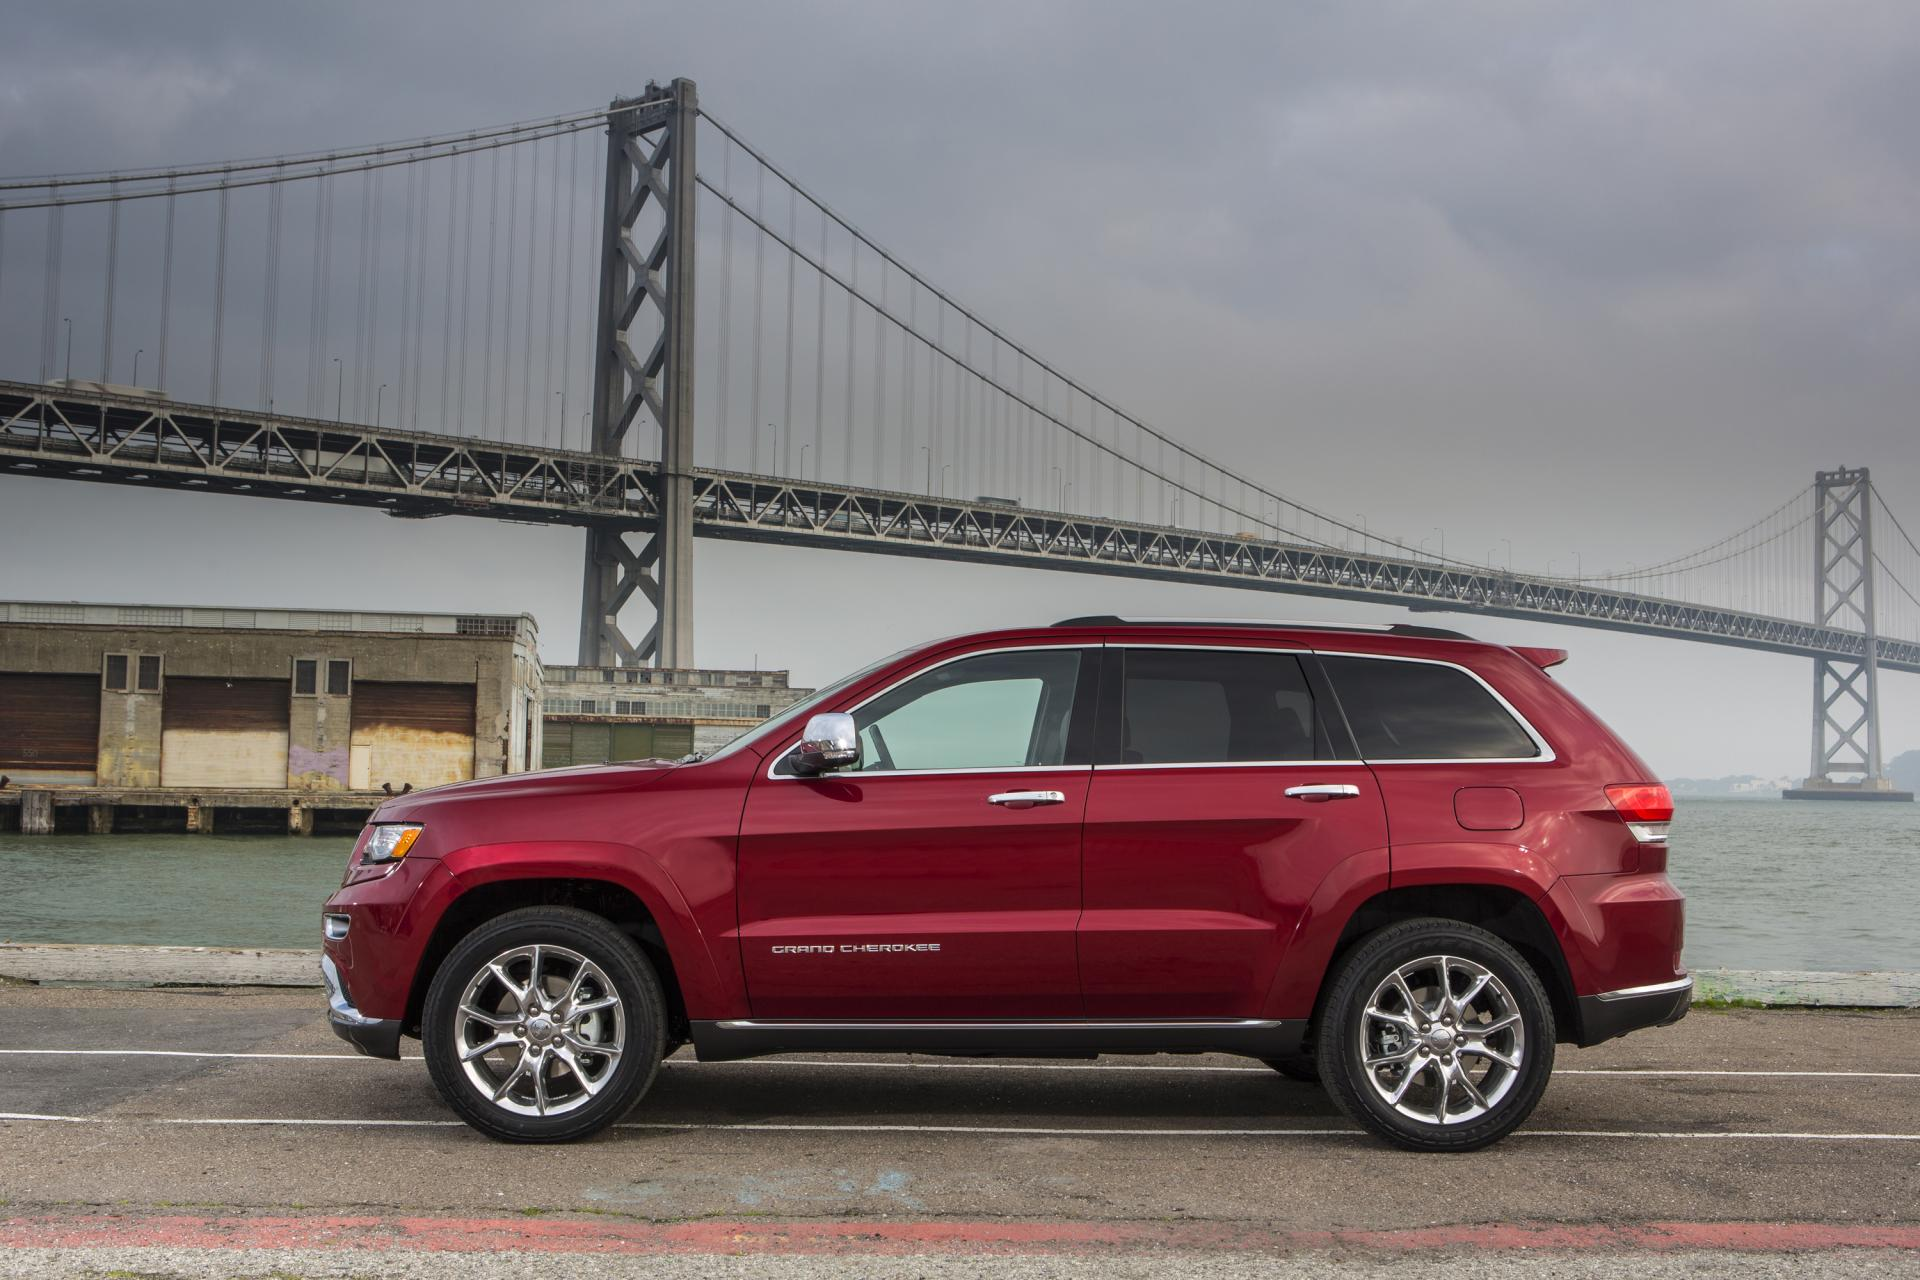 2014 jeep grand cherokee. Cars Review. Best American Auto & Cars Review